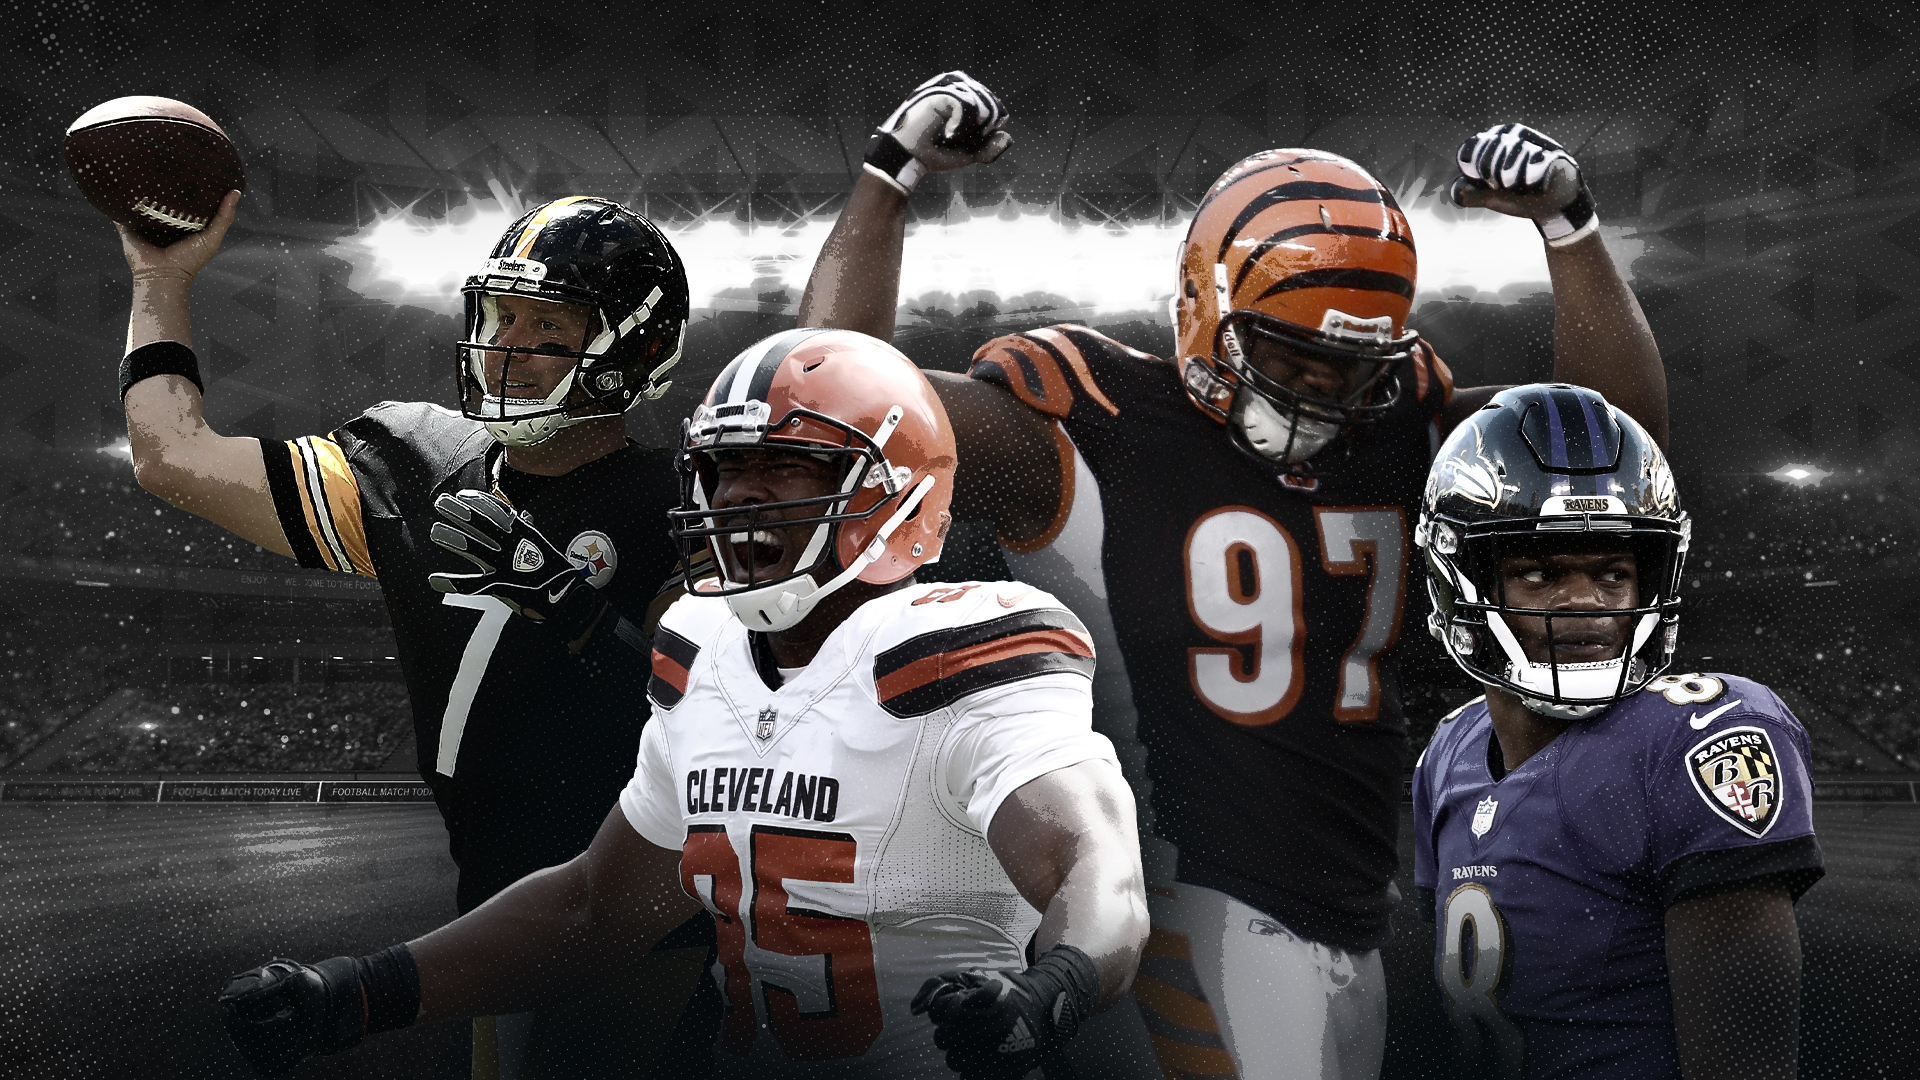 AFC North Division Rankings for Browns, Ravens and Steelers after Week 5 Games